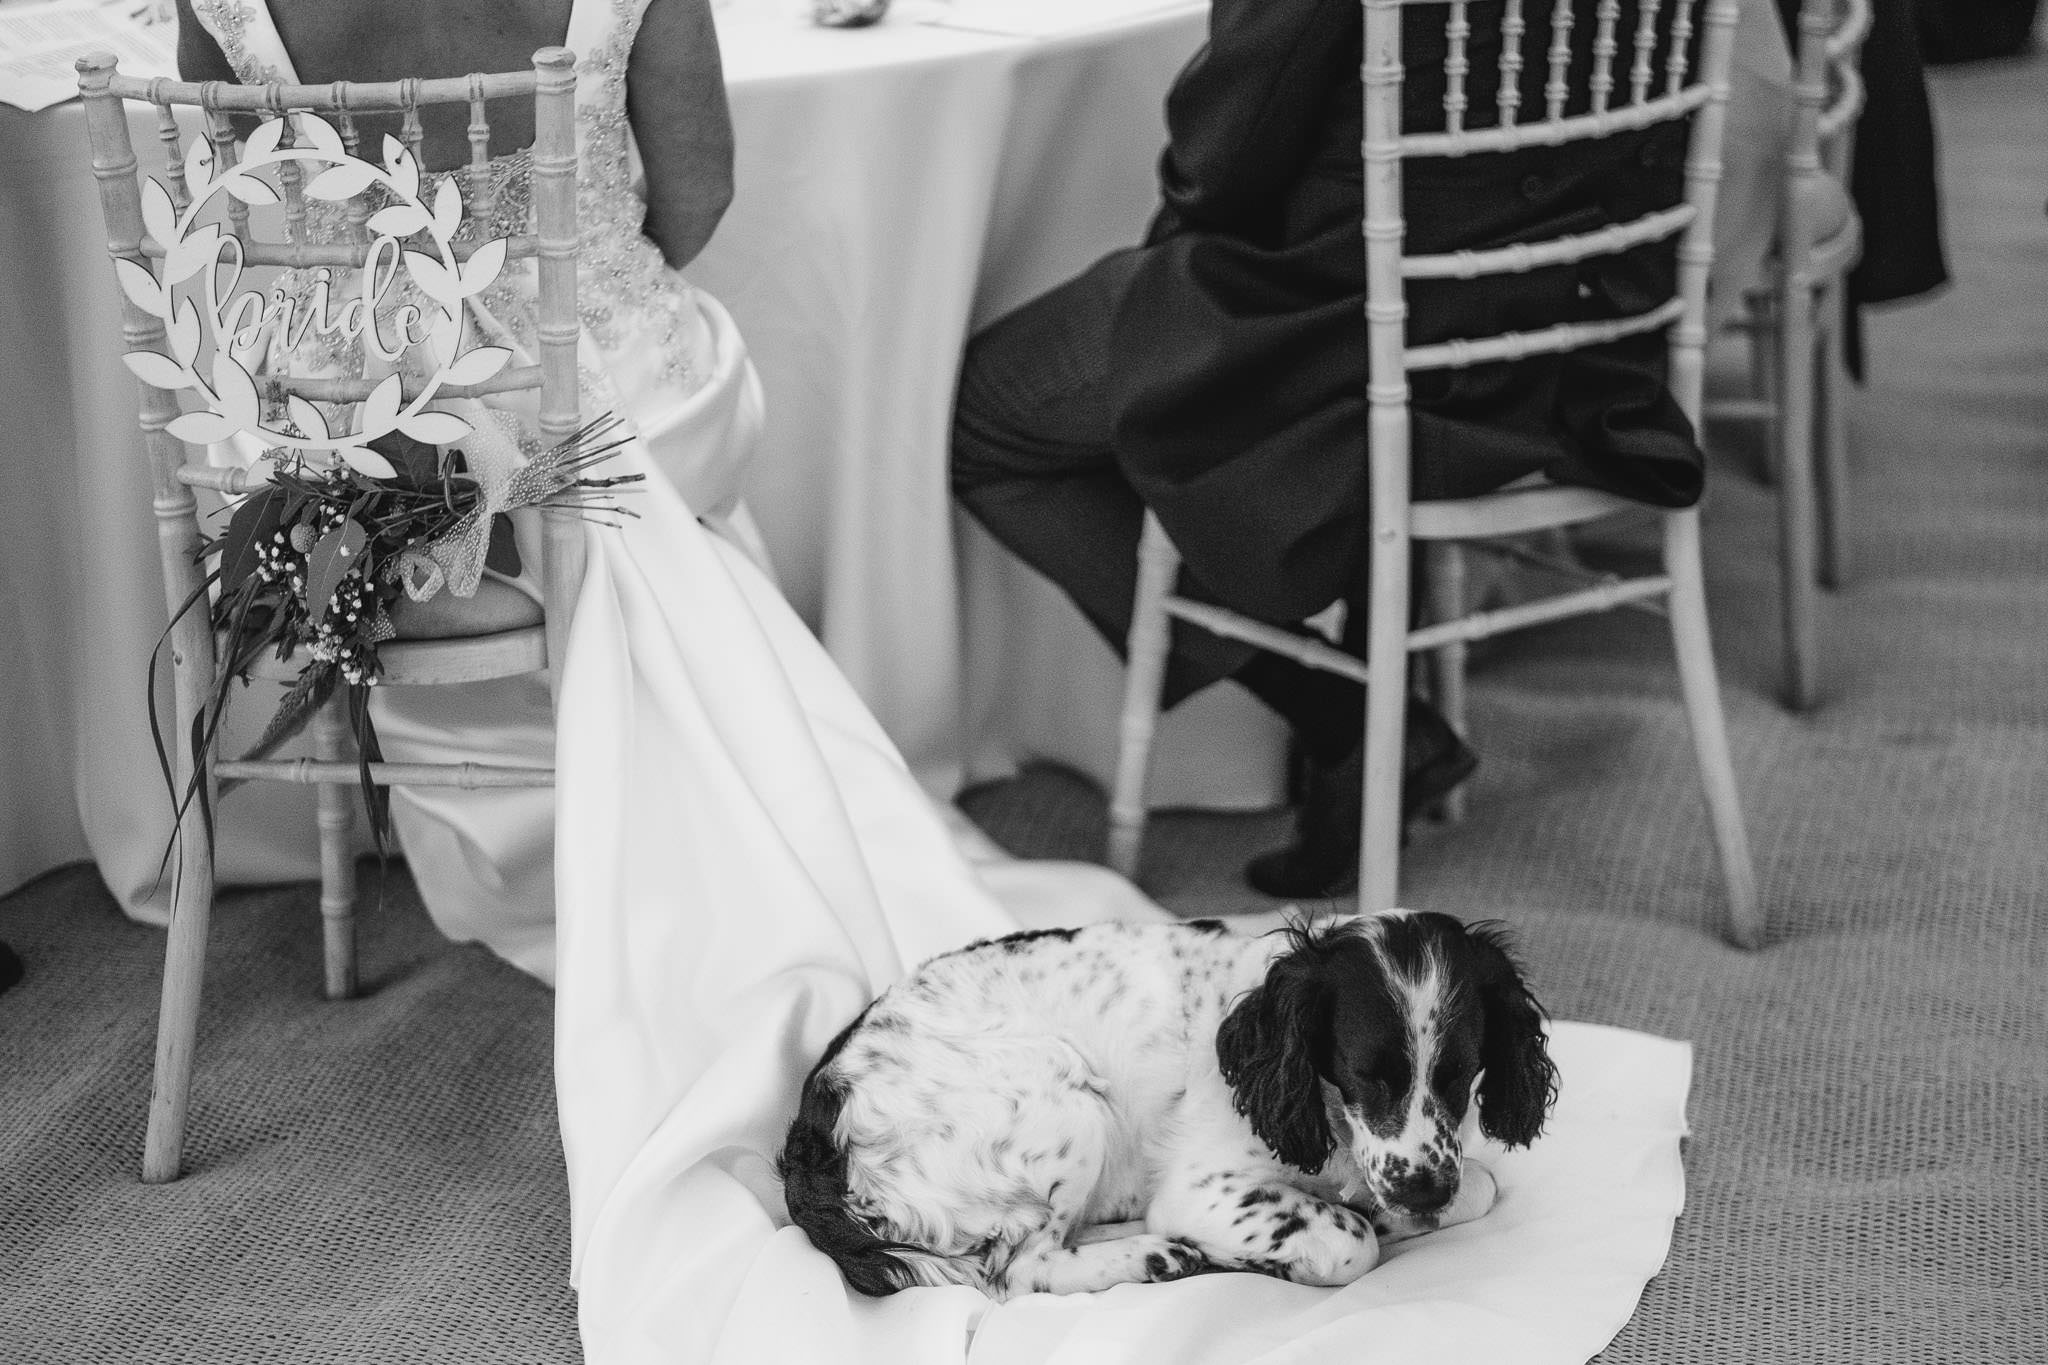 A black and white photo of the bride's dog sitting on her wedding dress